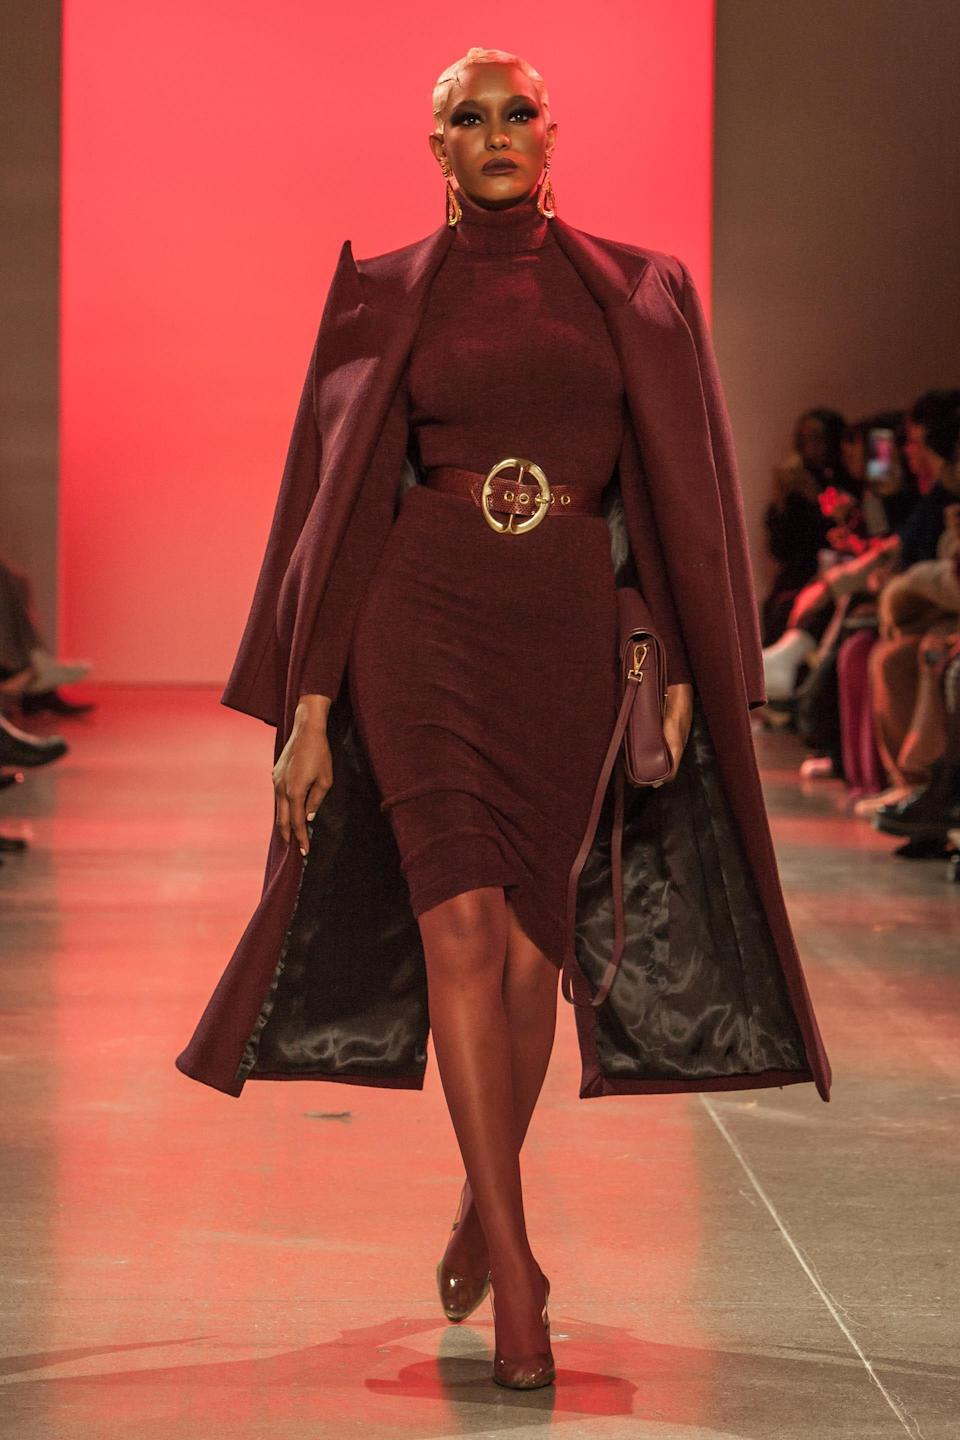 Michelle Obama's outfit Sergio Hudson